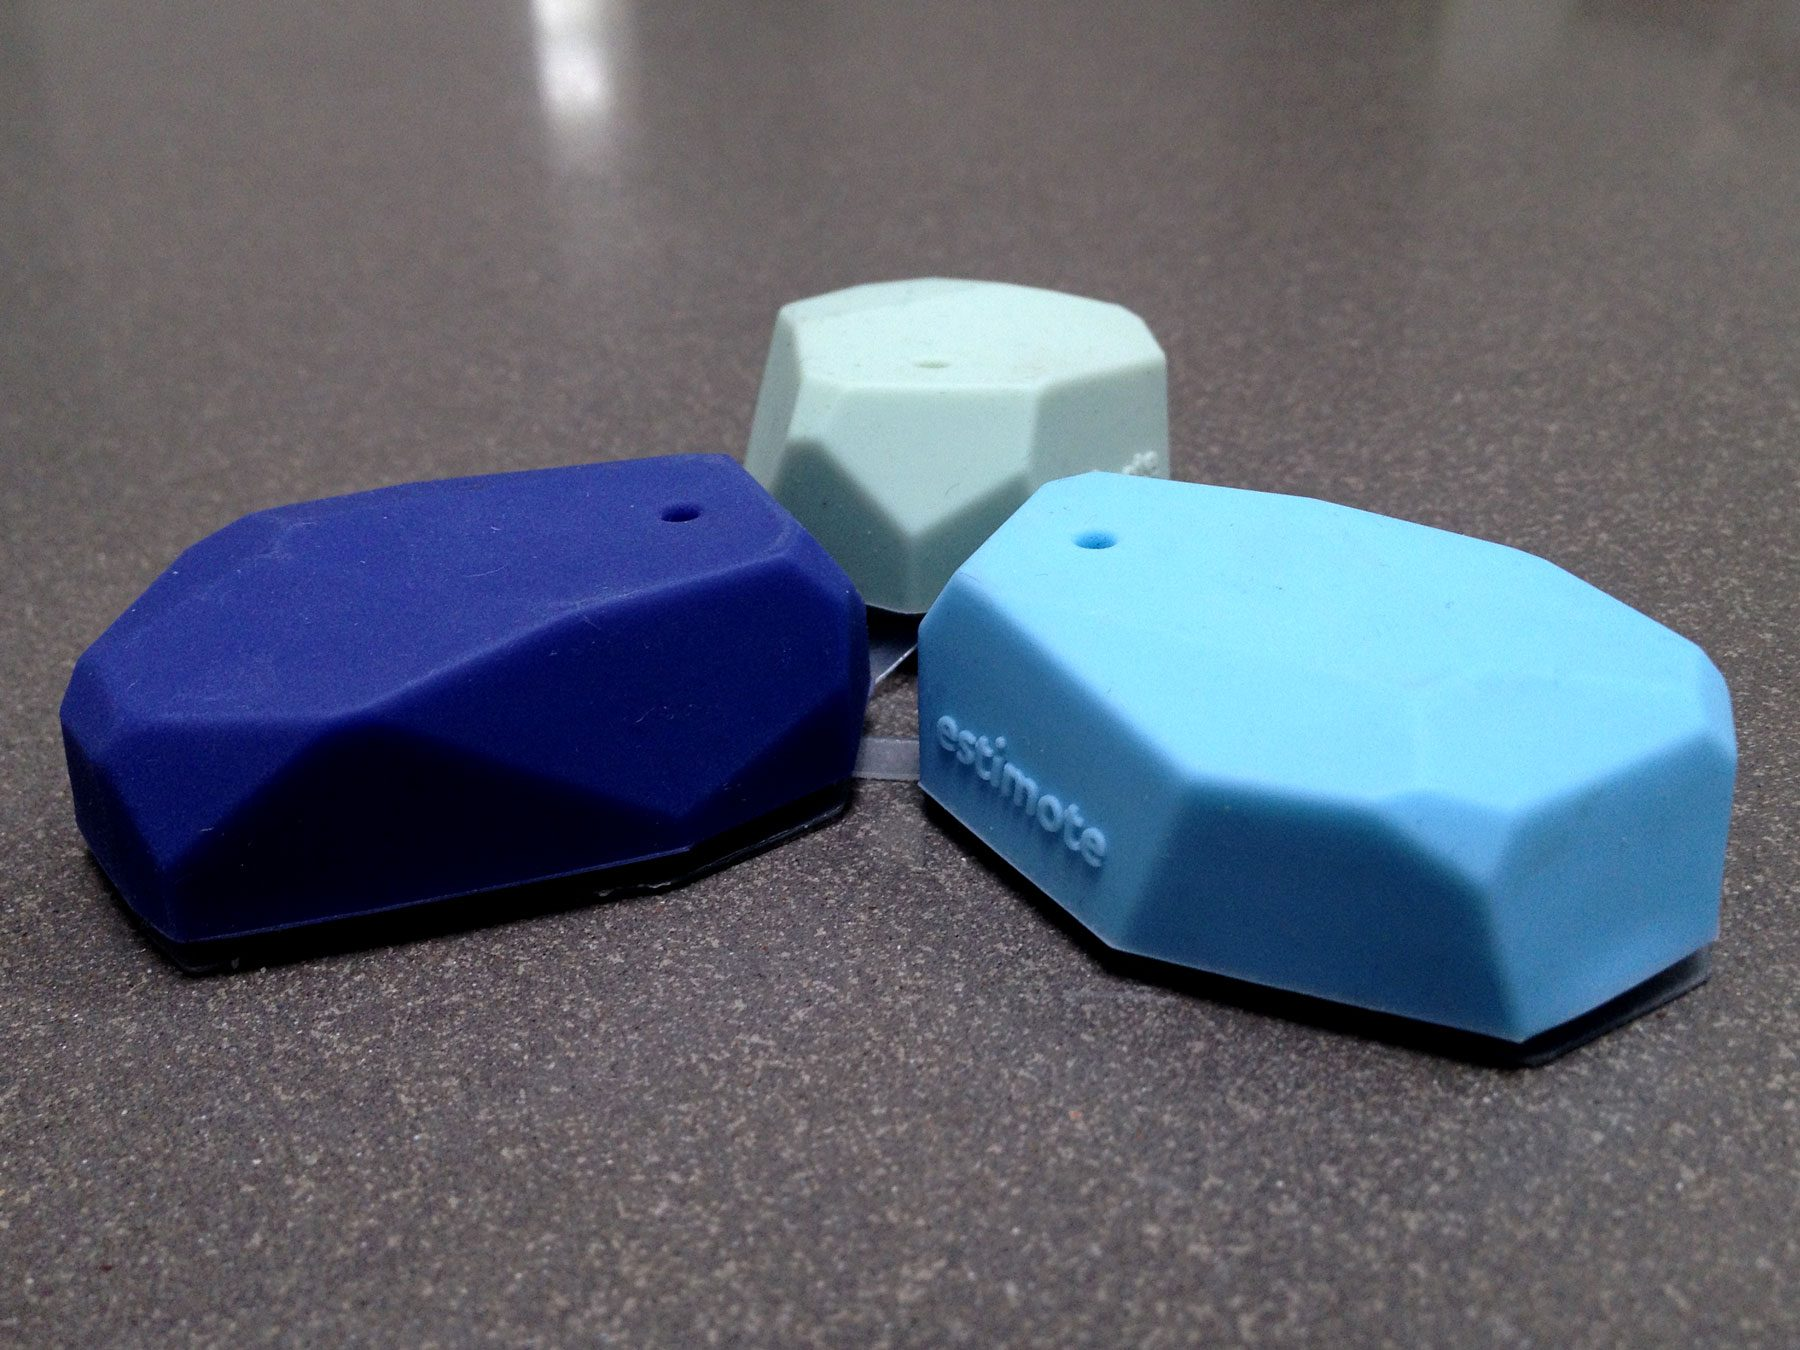 3 iBeacons shown in close up